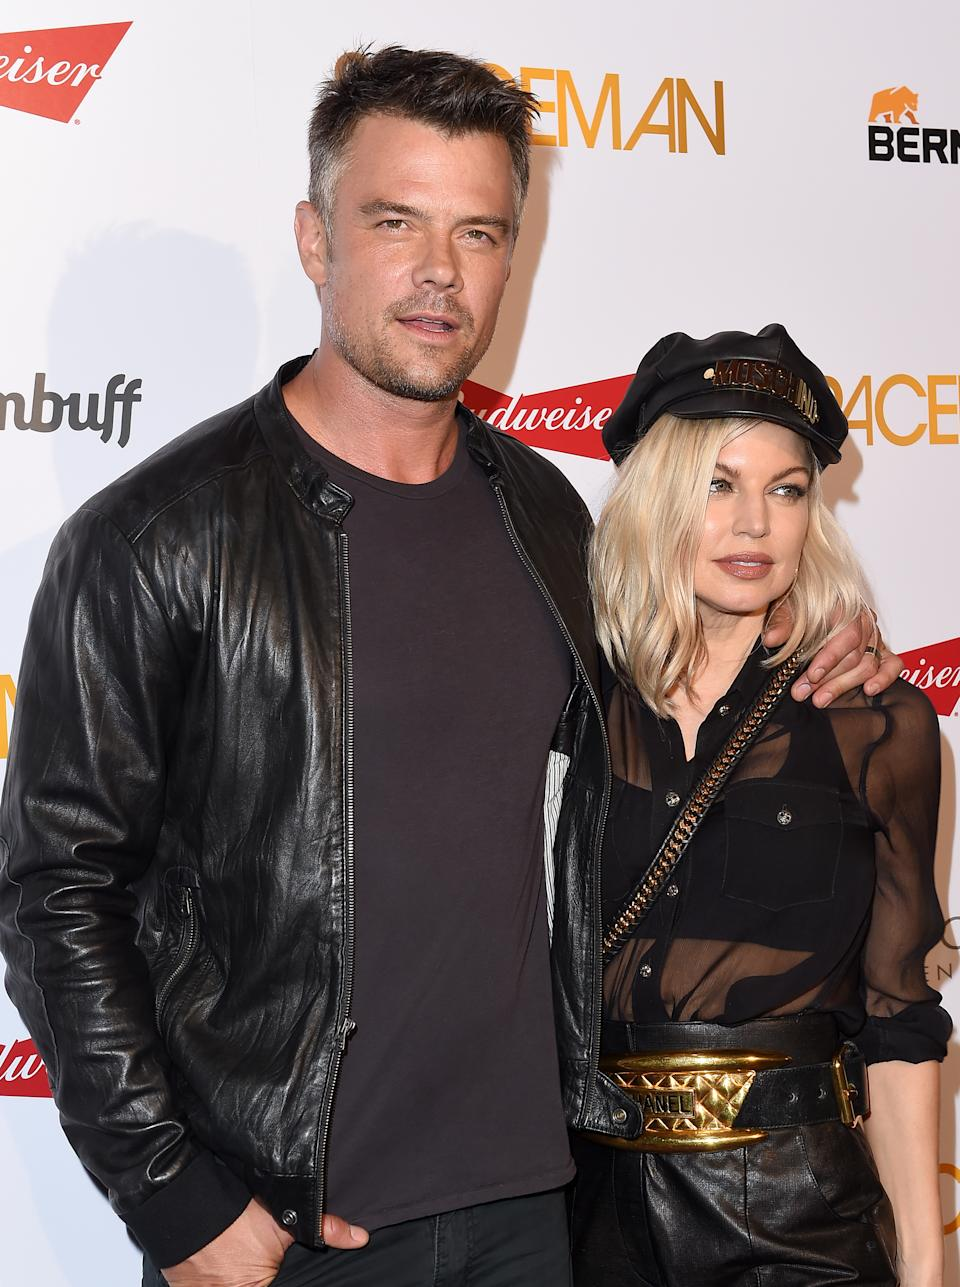 WEST HOLLYWOOD, CA - AUGUST 07:  Actor Josh Duhamel and wife singer Fergie arrive at the premiere of Orion Pictures' 'Spaceman' at The London Hotel on August 7, 2016 in West Hollywood, California.  (Photo by Axelle/Bauer-Griffin/FilmMagic)